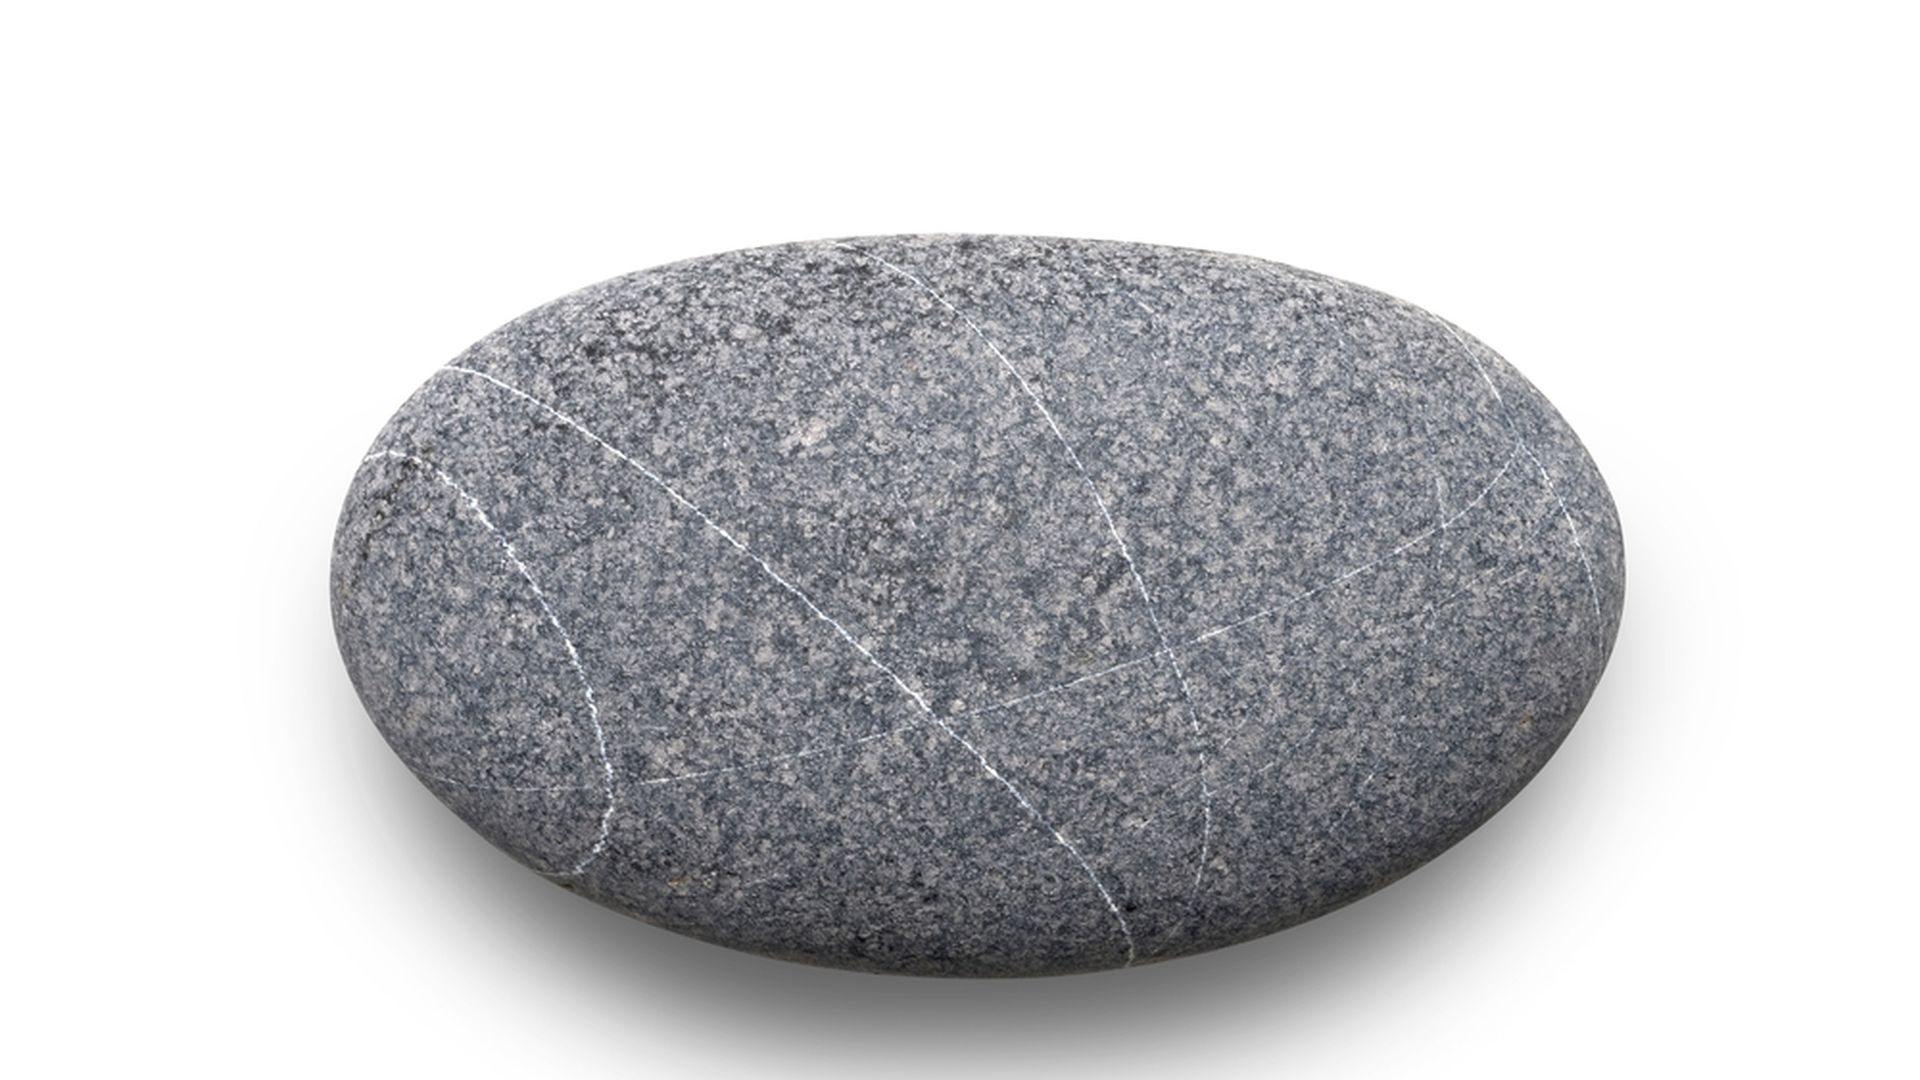 Zoo: What Should You Name Your Pet Rock?